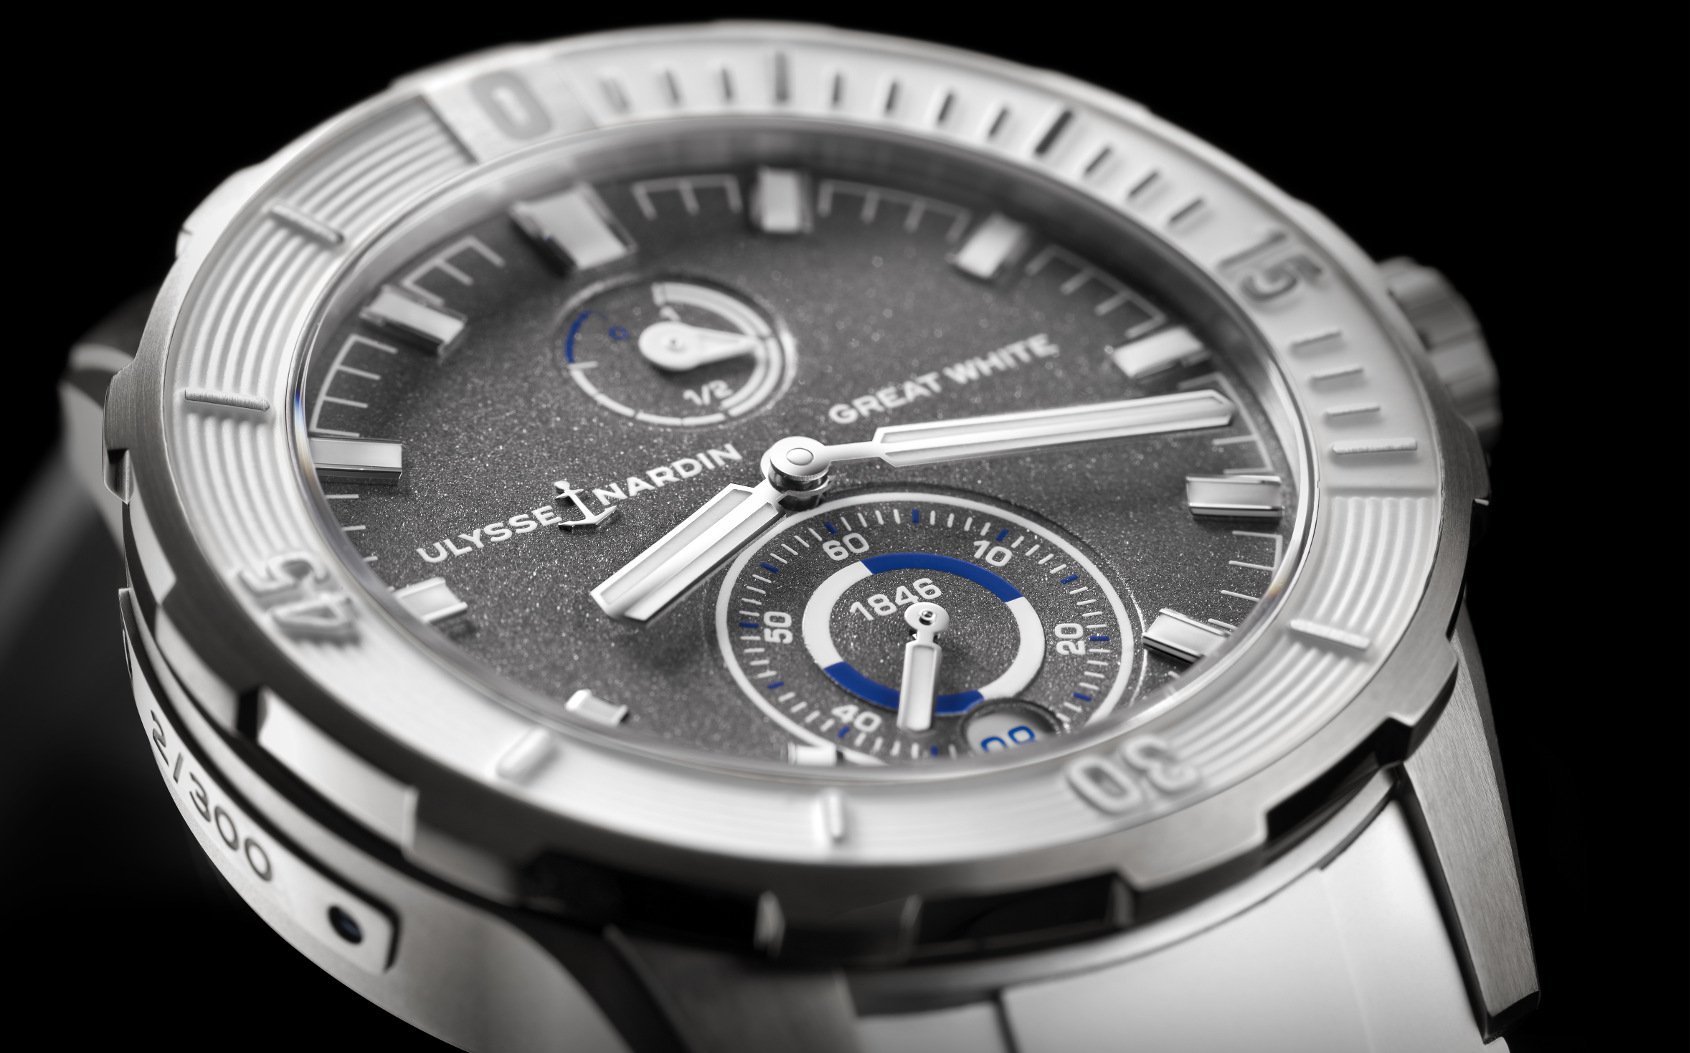 INTRODUCING: The Ulysse Nardin Diver Chronometer – streamlined and launched in luxury